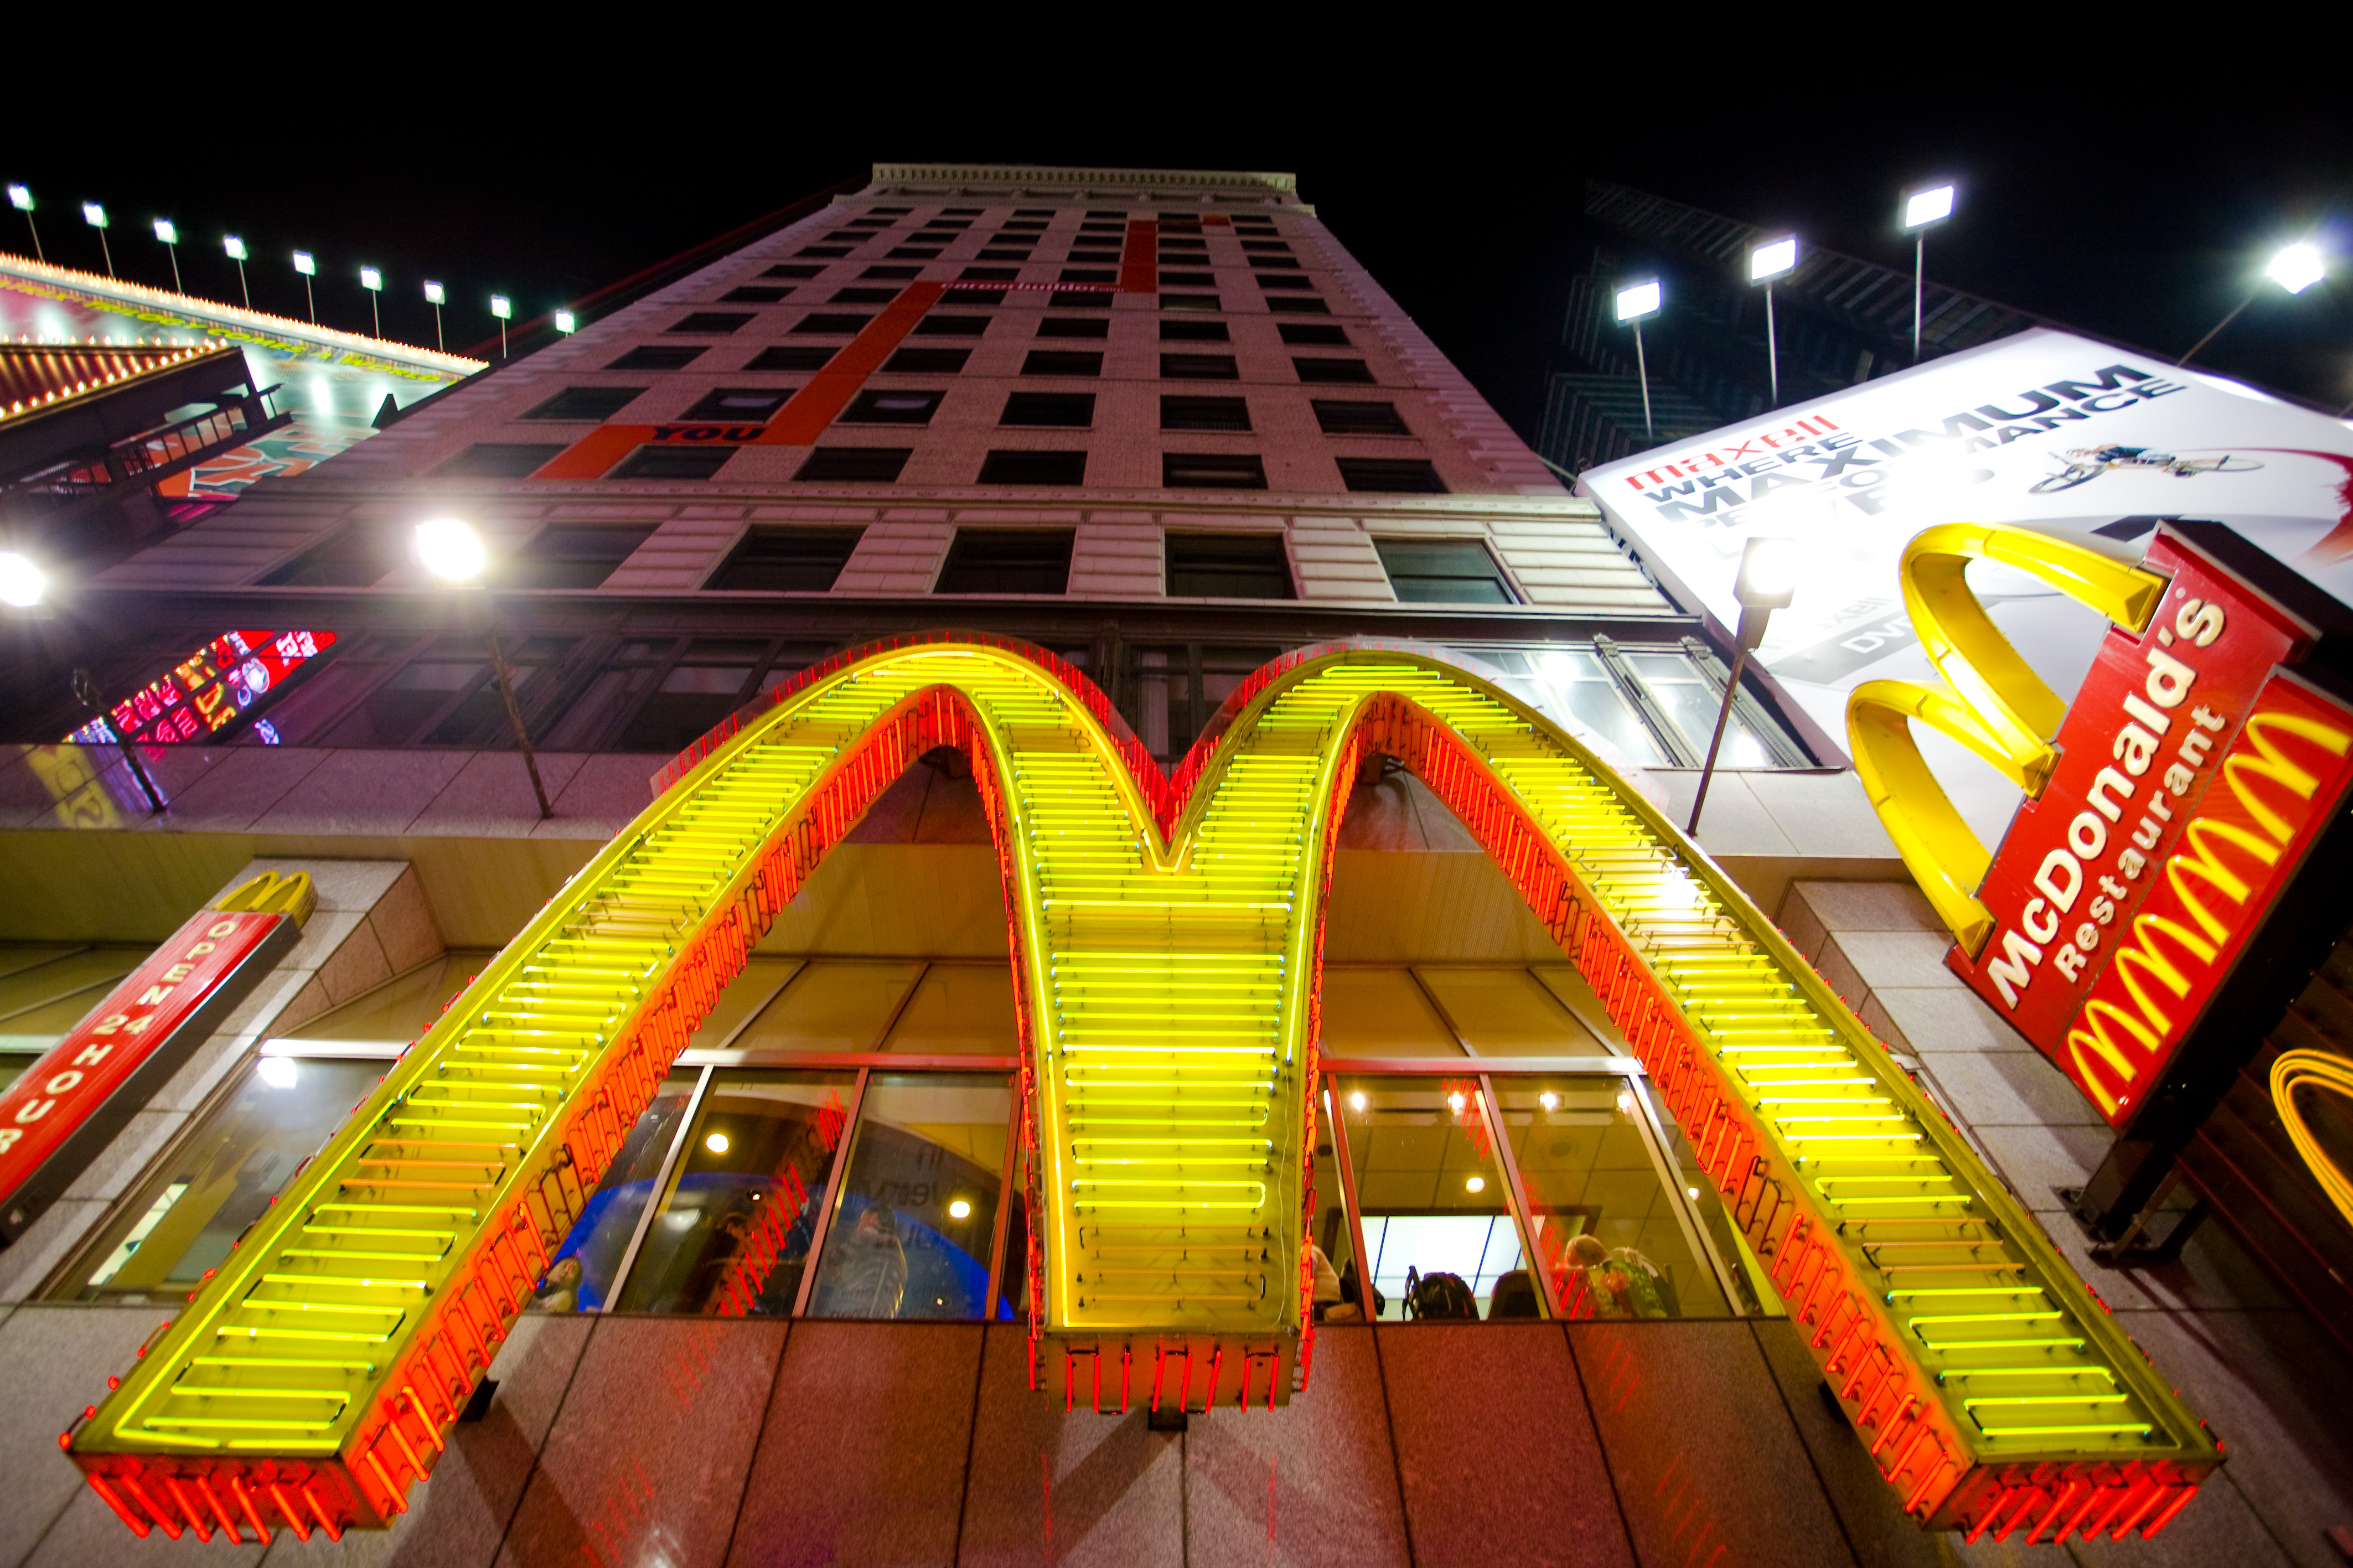 Golden arches lit up on building